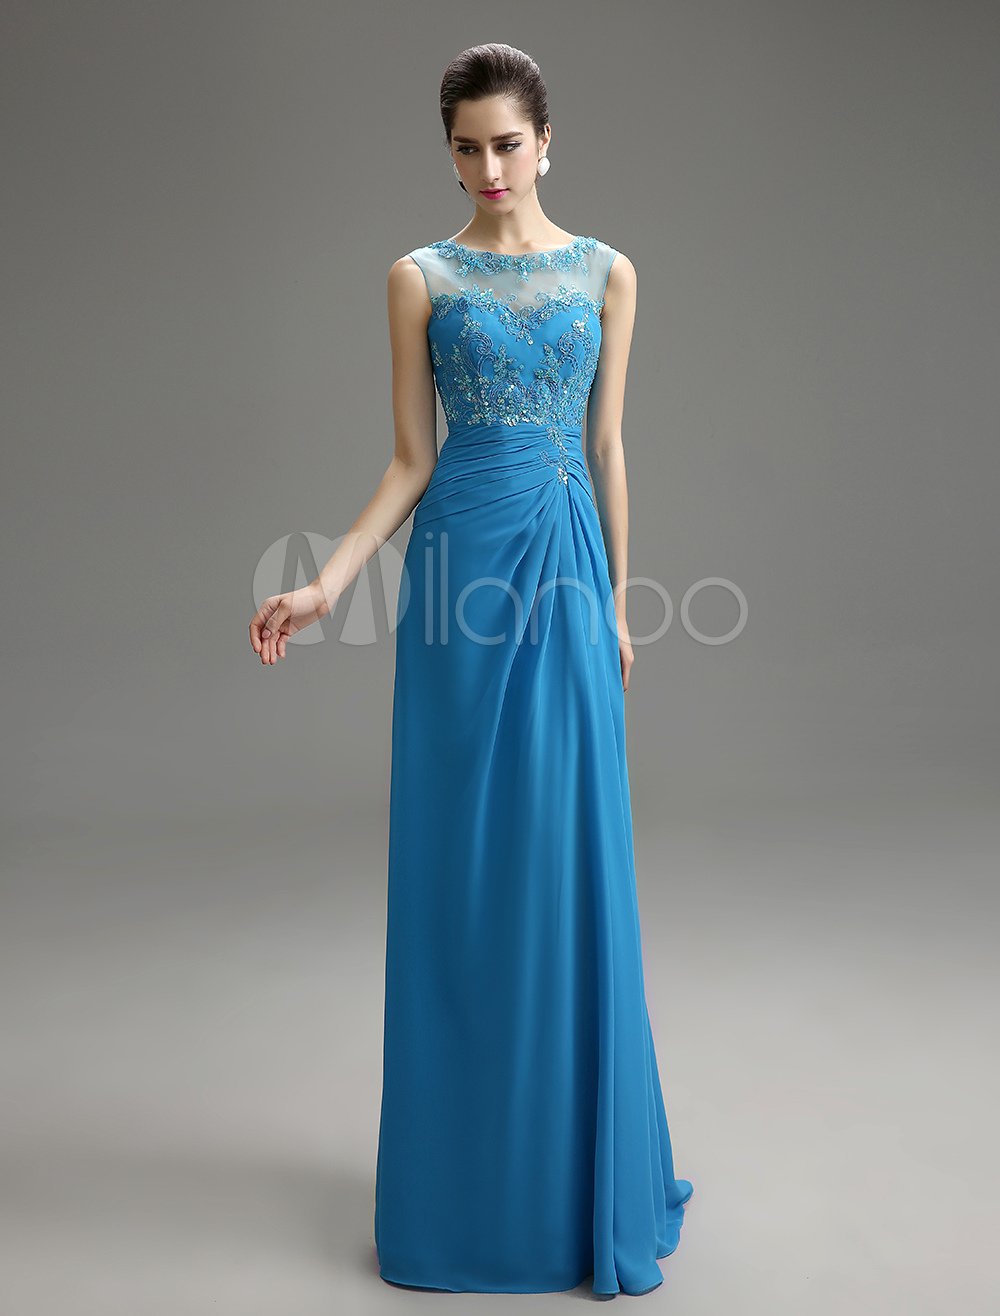 Chiffon Mother Of Bride Dress Teal Backless Illusion Neck Sleeveless Floor Length Wedding Party Dress